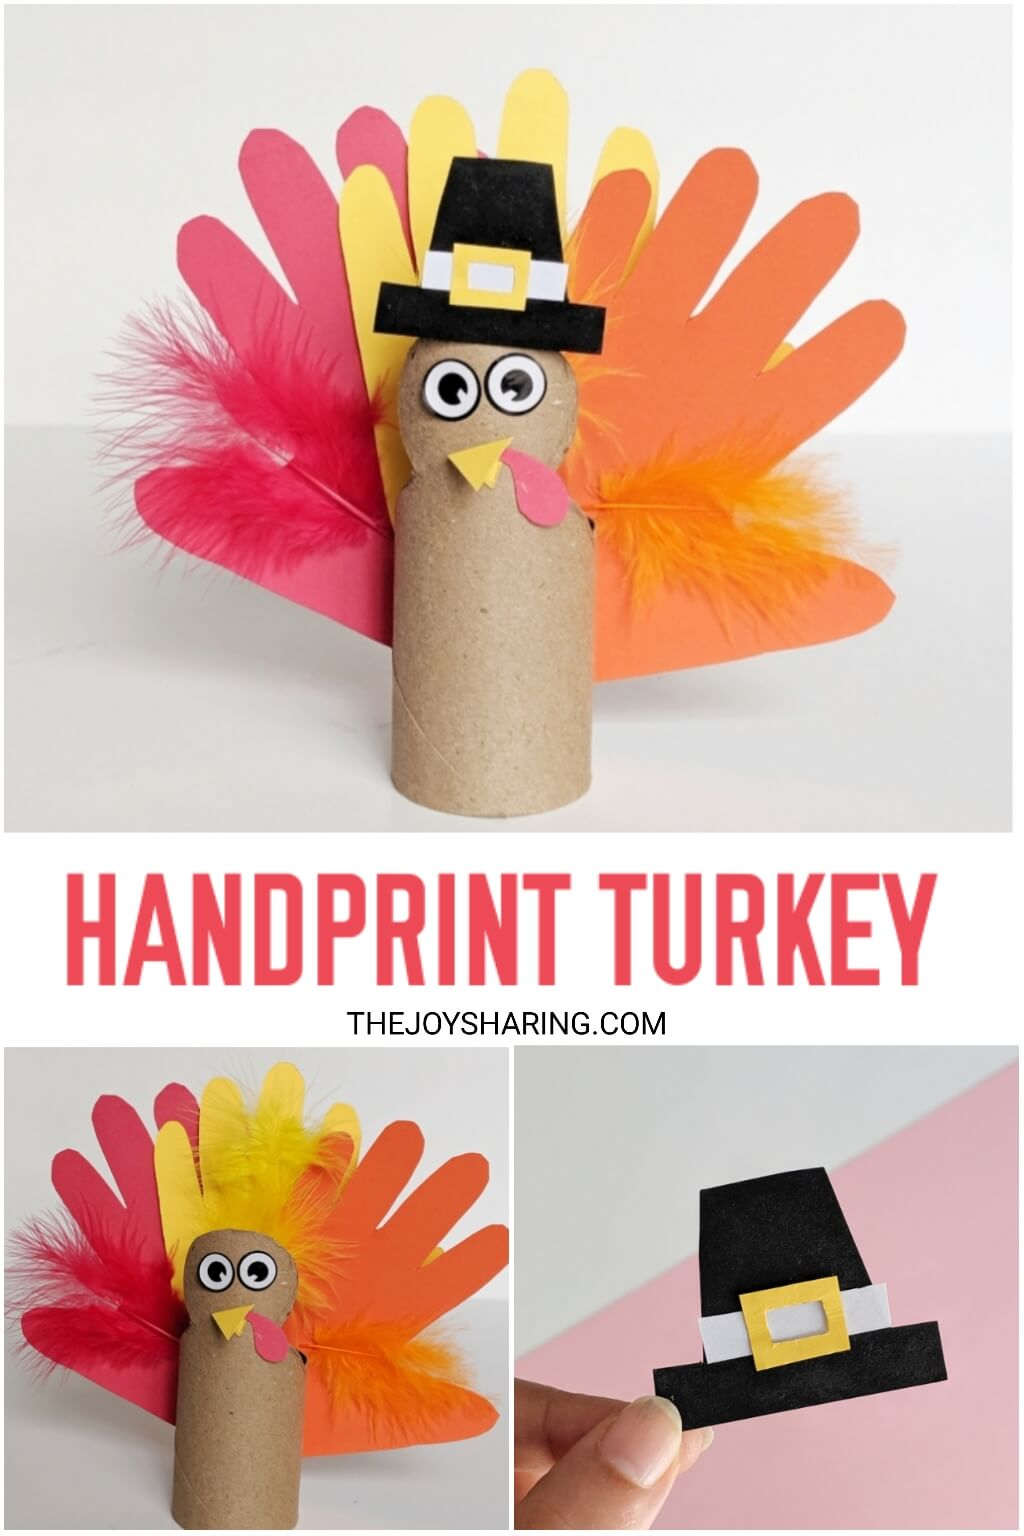 Easy step-by-step tutorial to make turkey craft for Thanksgiving